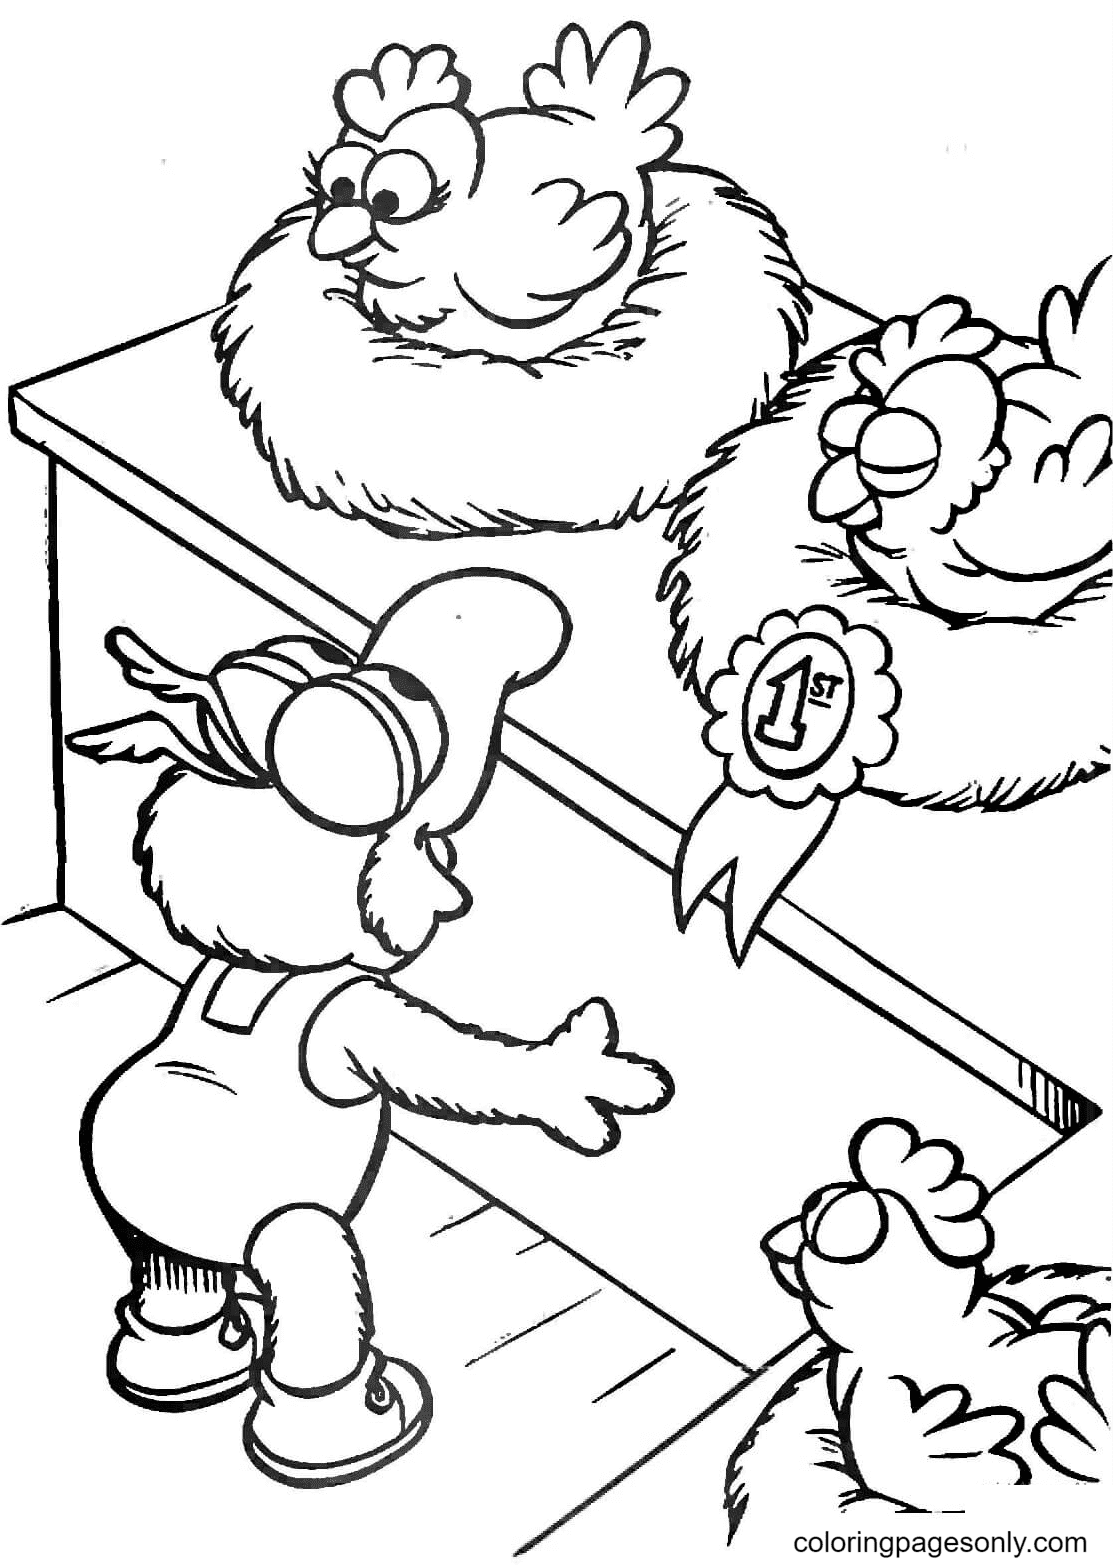 Baby Gonzo and Chickens Coloring Page